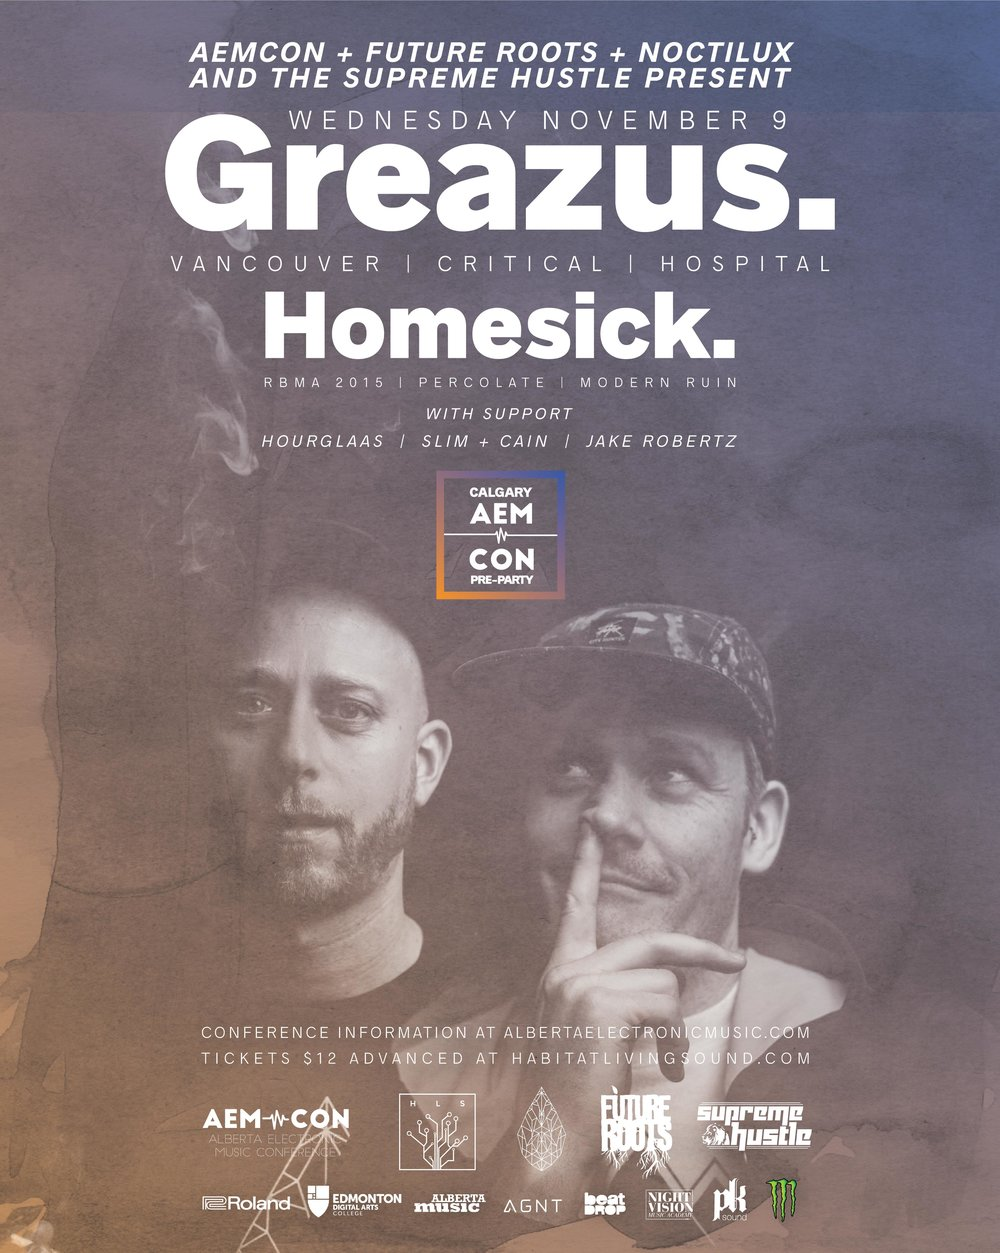 greazus-homesick-habitat-living-sound.jpeg